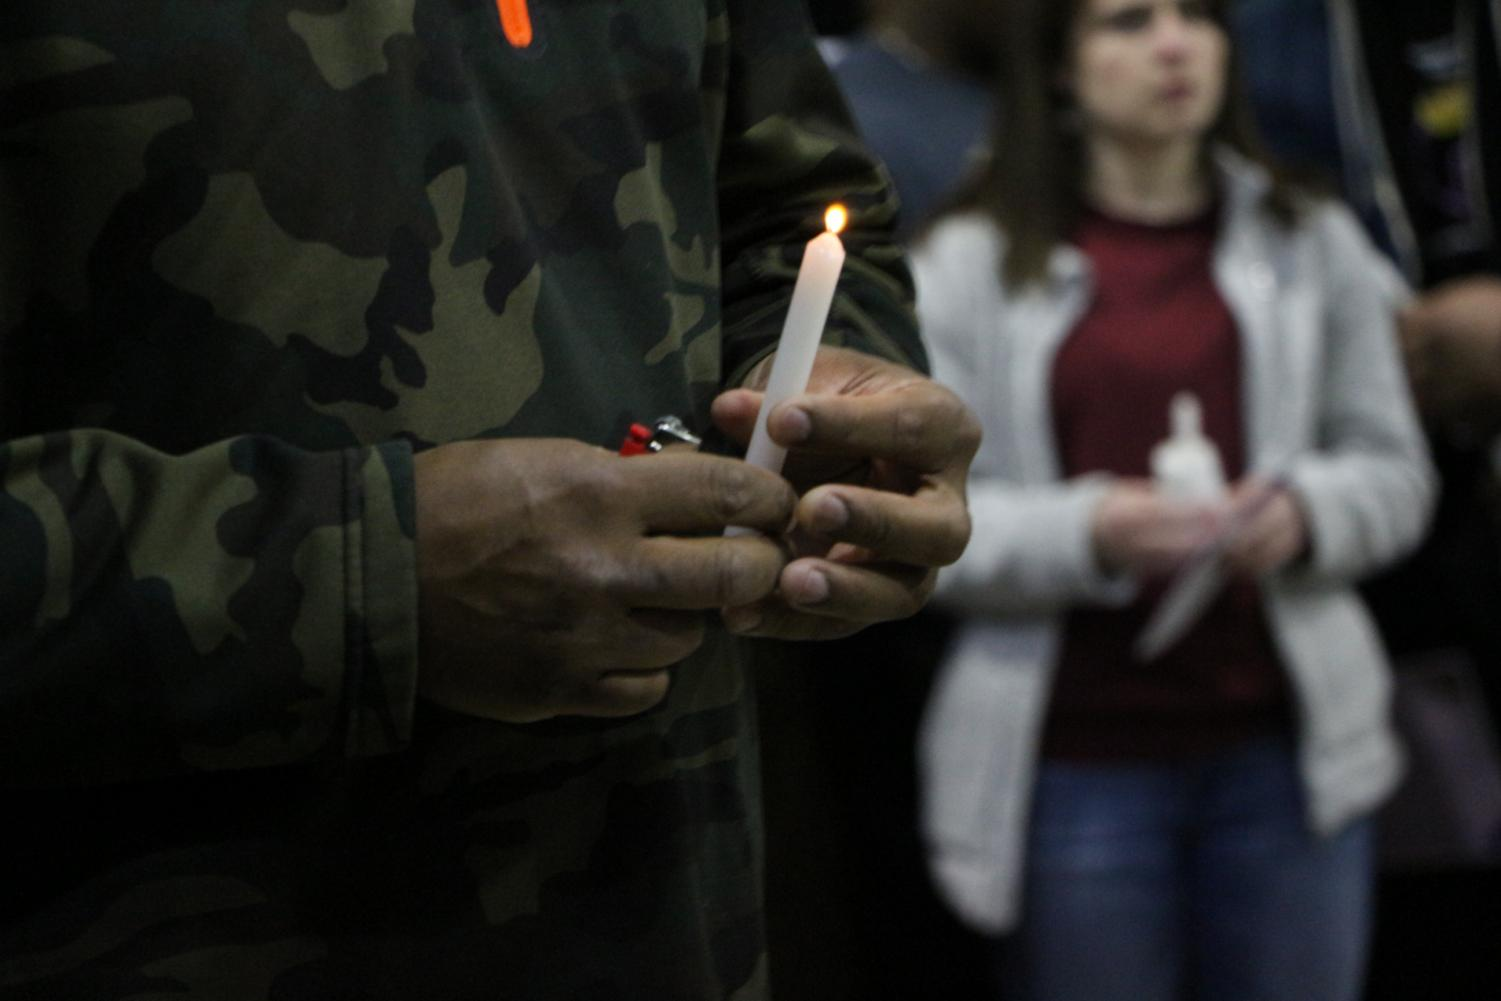 Students gathered at Robert Morris University to remember and honor the late Antwon Rose who was shot and killed by Pittsburgh Police officer Michael Rosfeld in 2018. Photo Credit: (RMU Sentry Media/Soundharjya Babu)